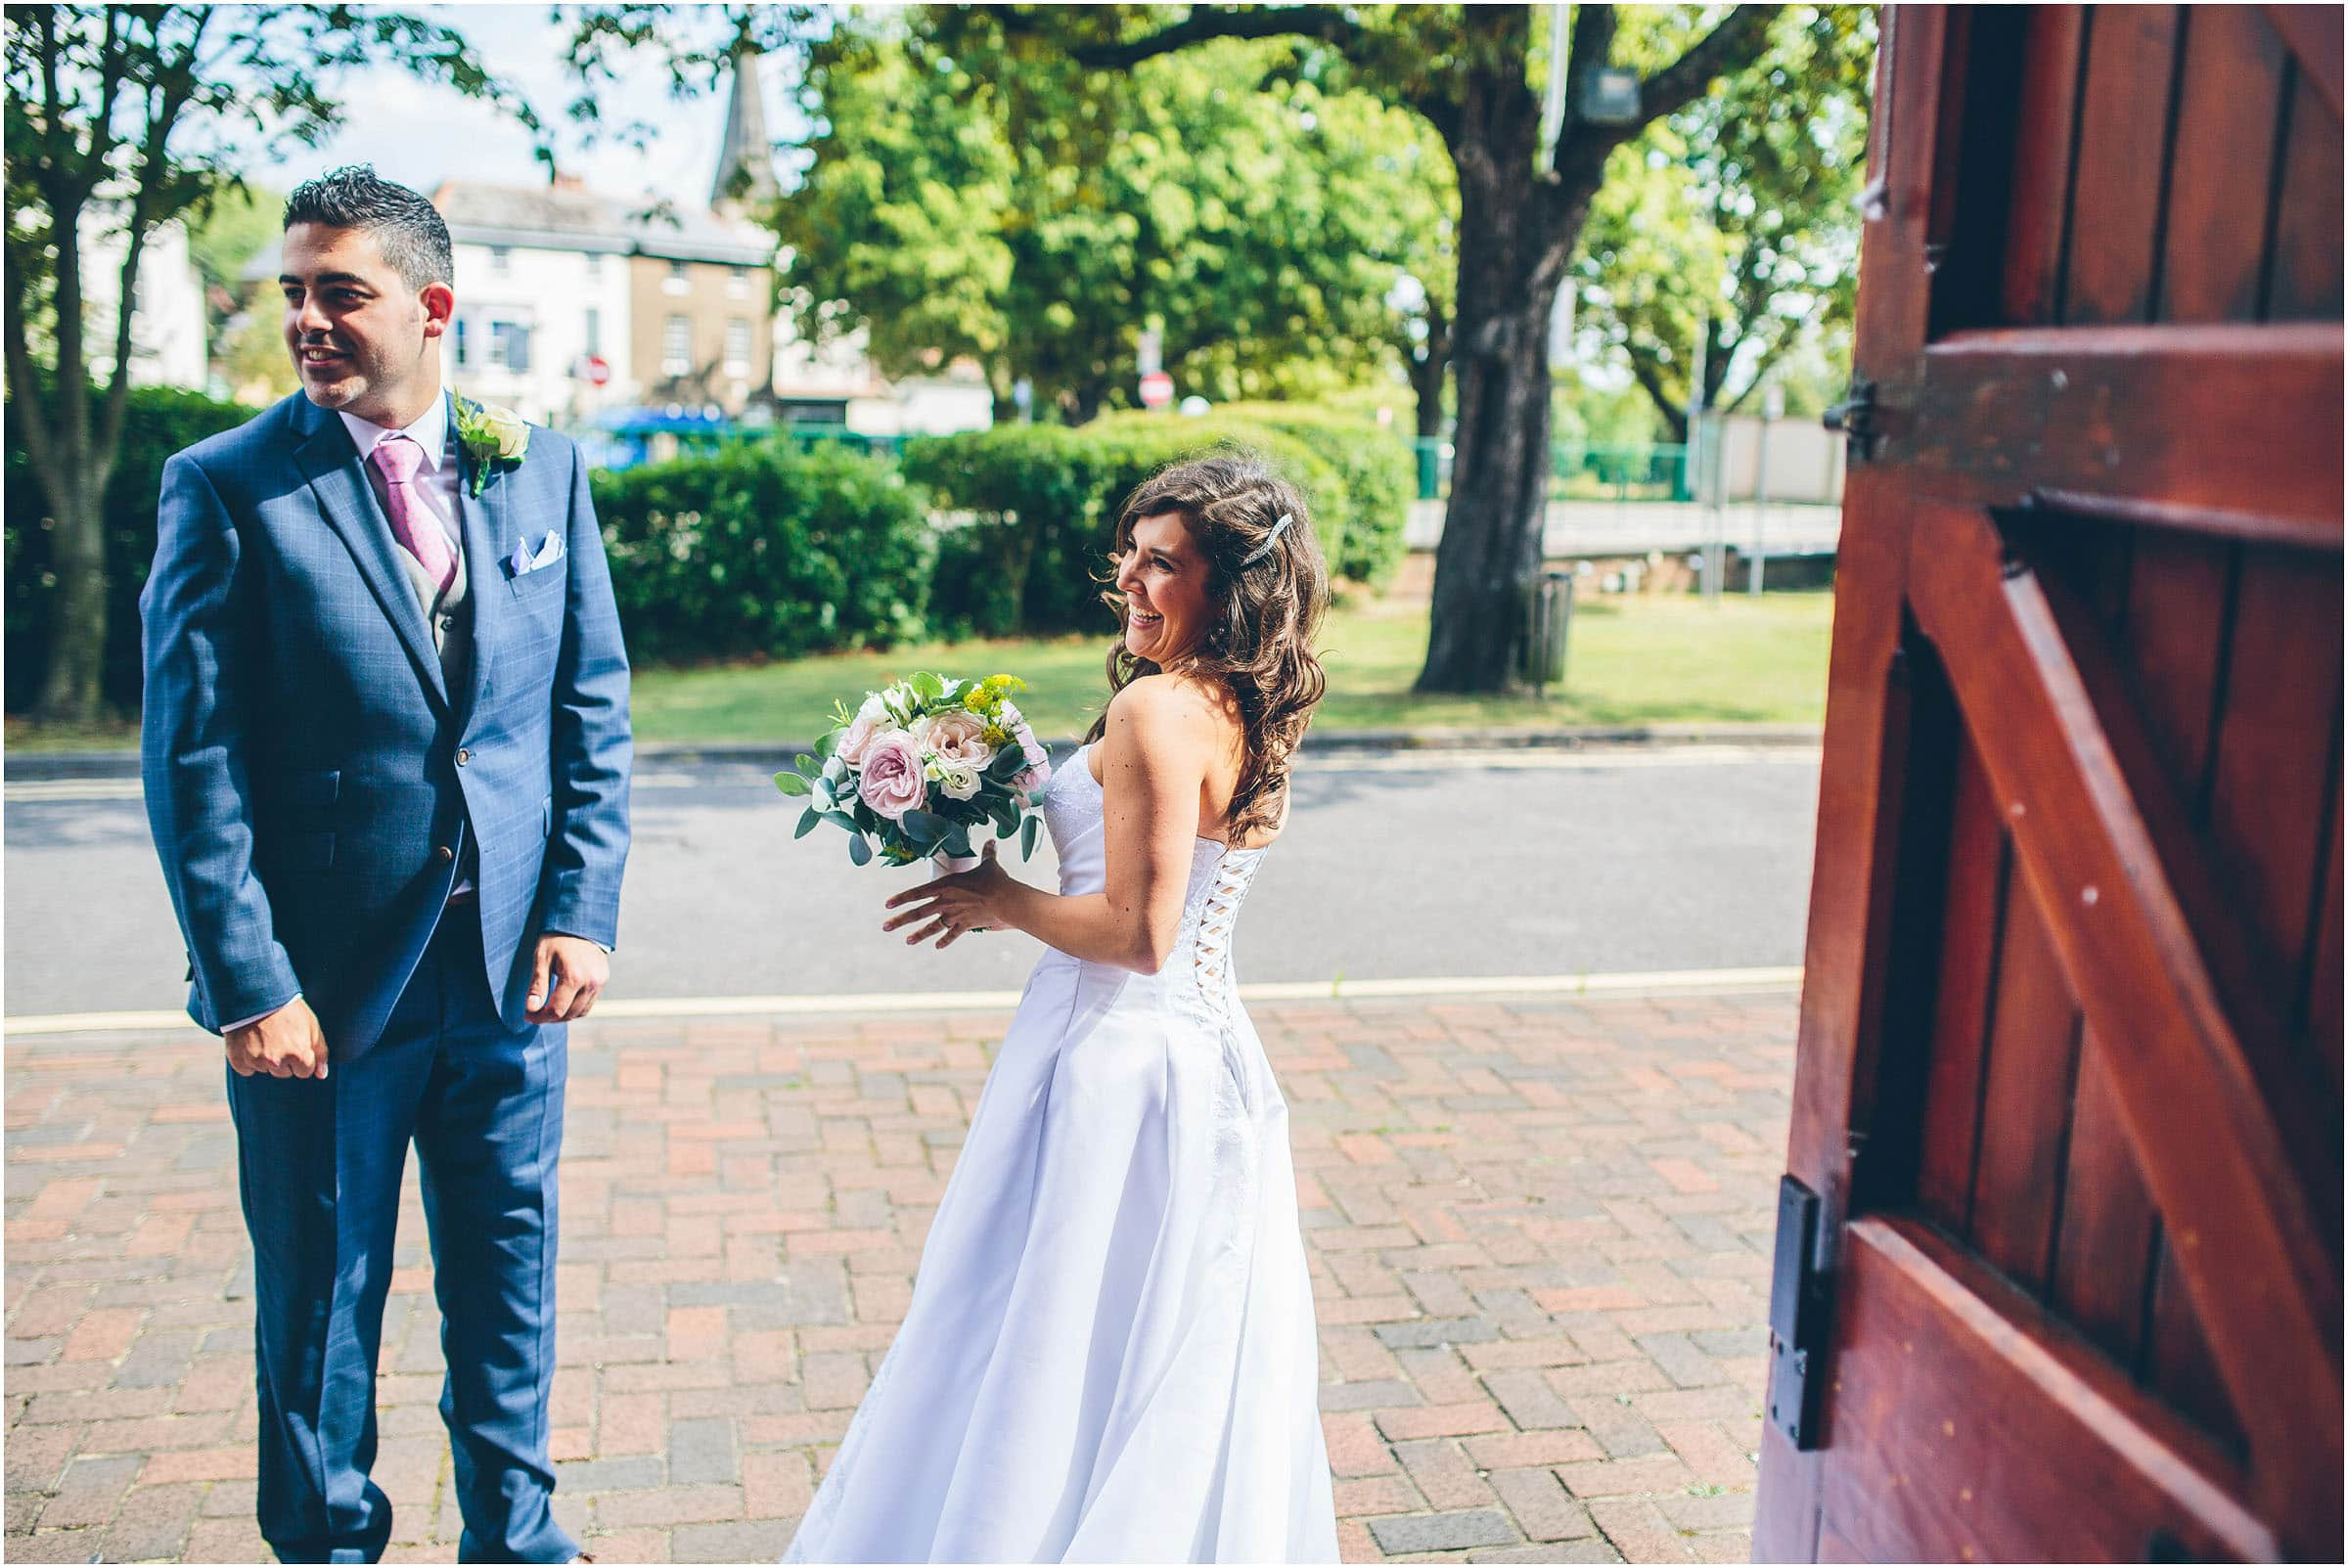 London_Wedding_Photography_0035